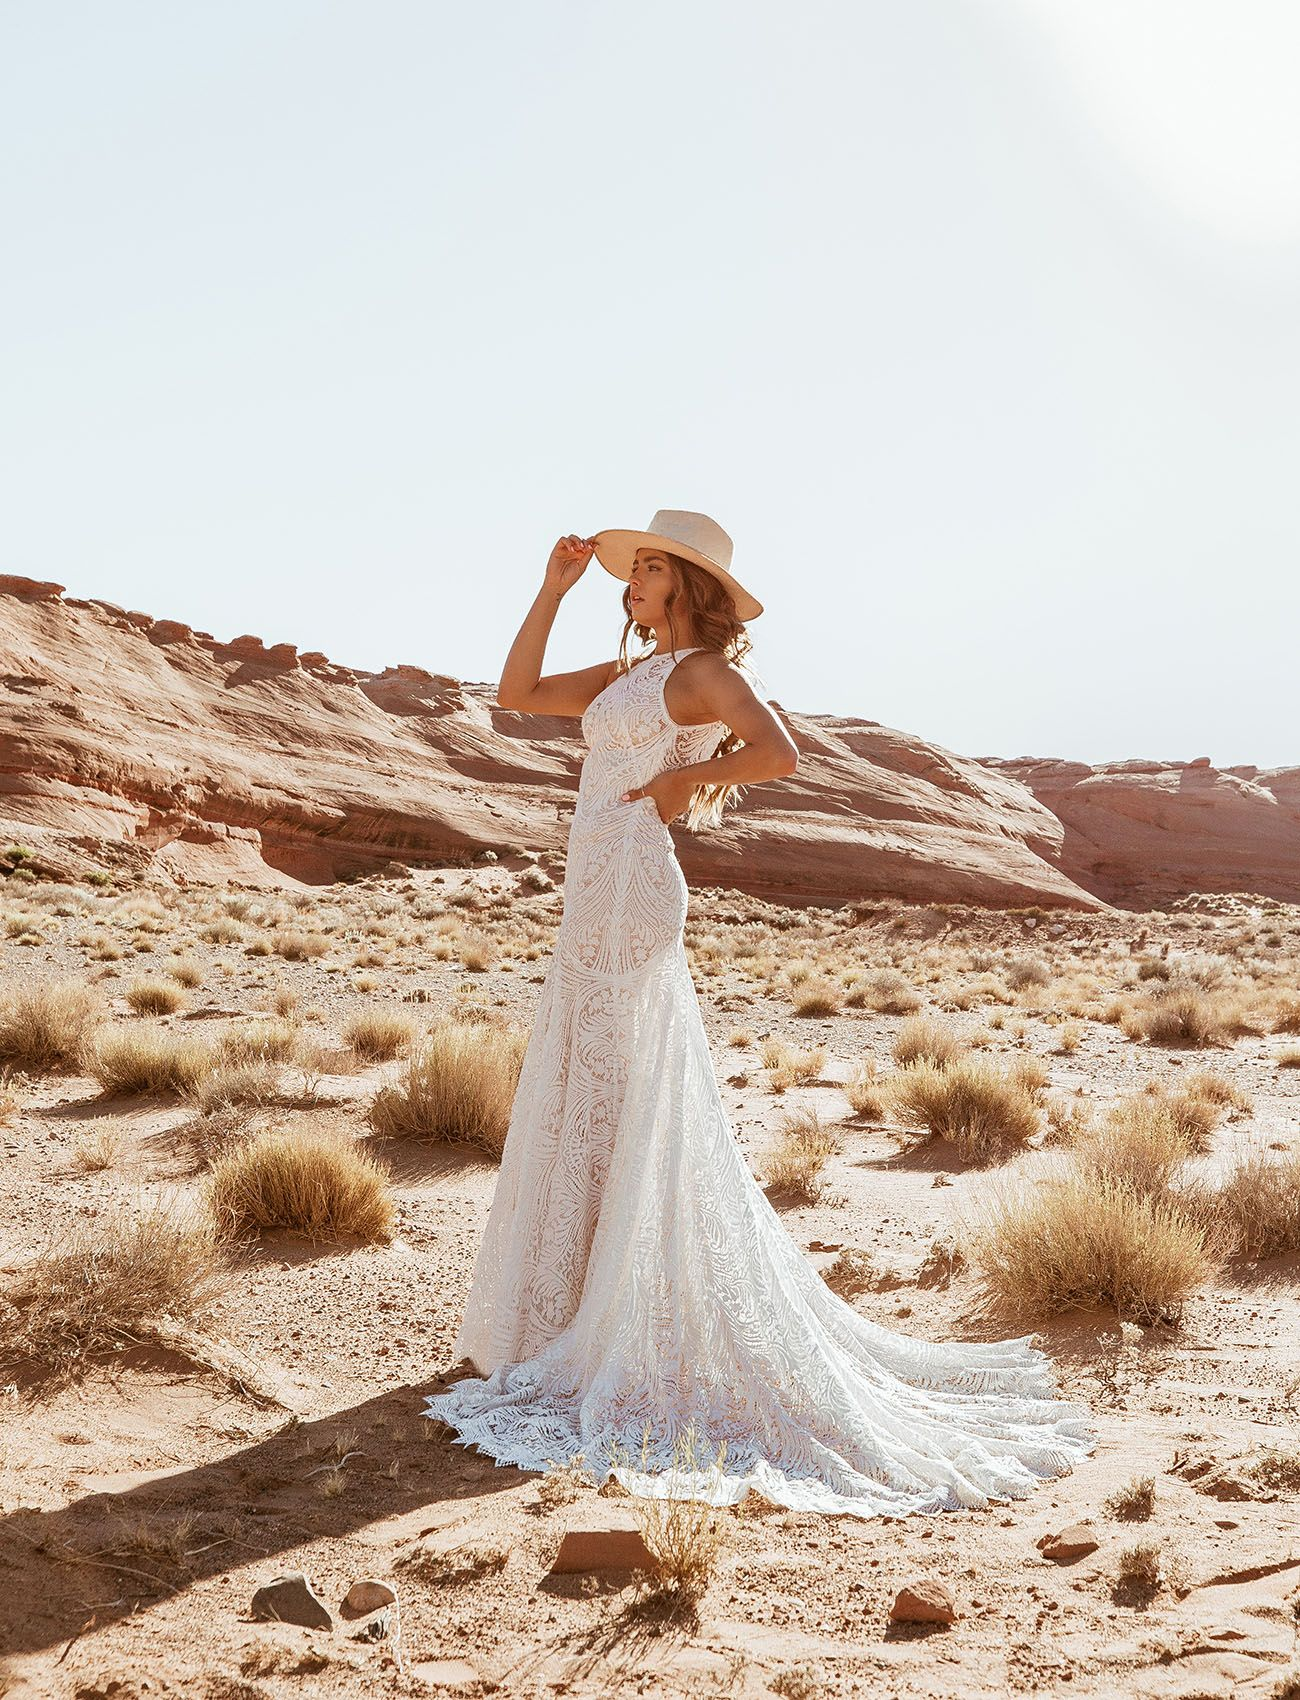 Beach wedding pre shoot  Win the Phoenix Dress from our Lovers Society X Green Wedding Shoes